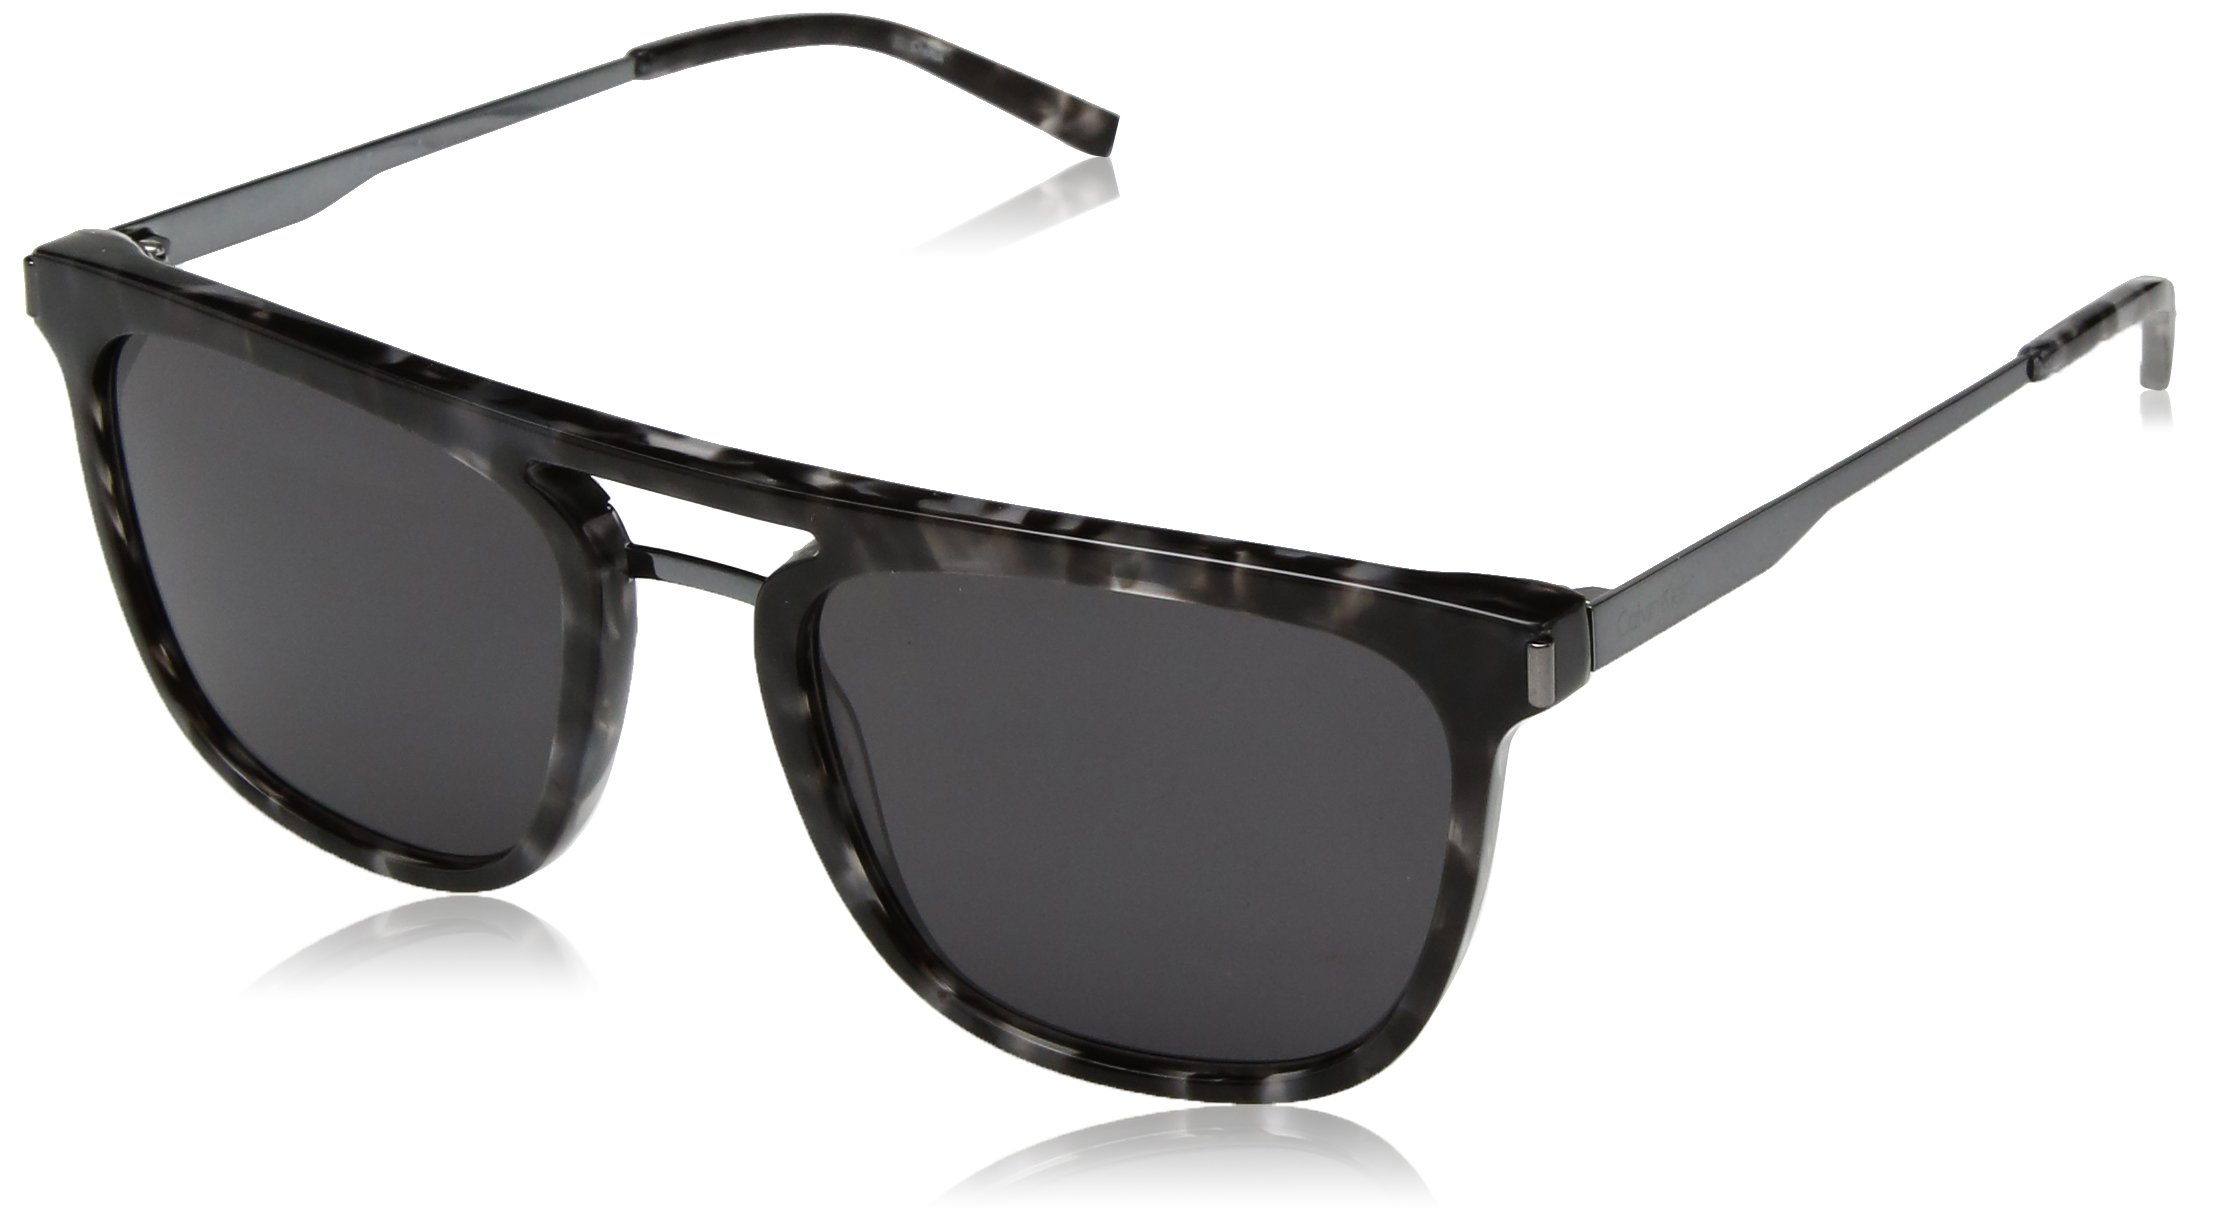 Calvin Klein Men's Ck1239s Square Sunglasses, Grey Havana, 54 mm